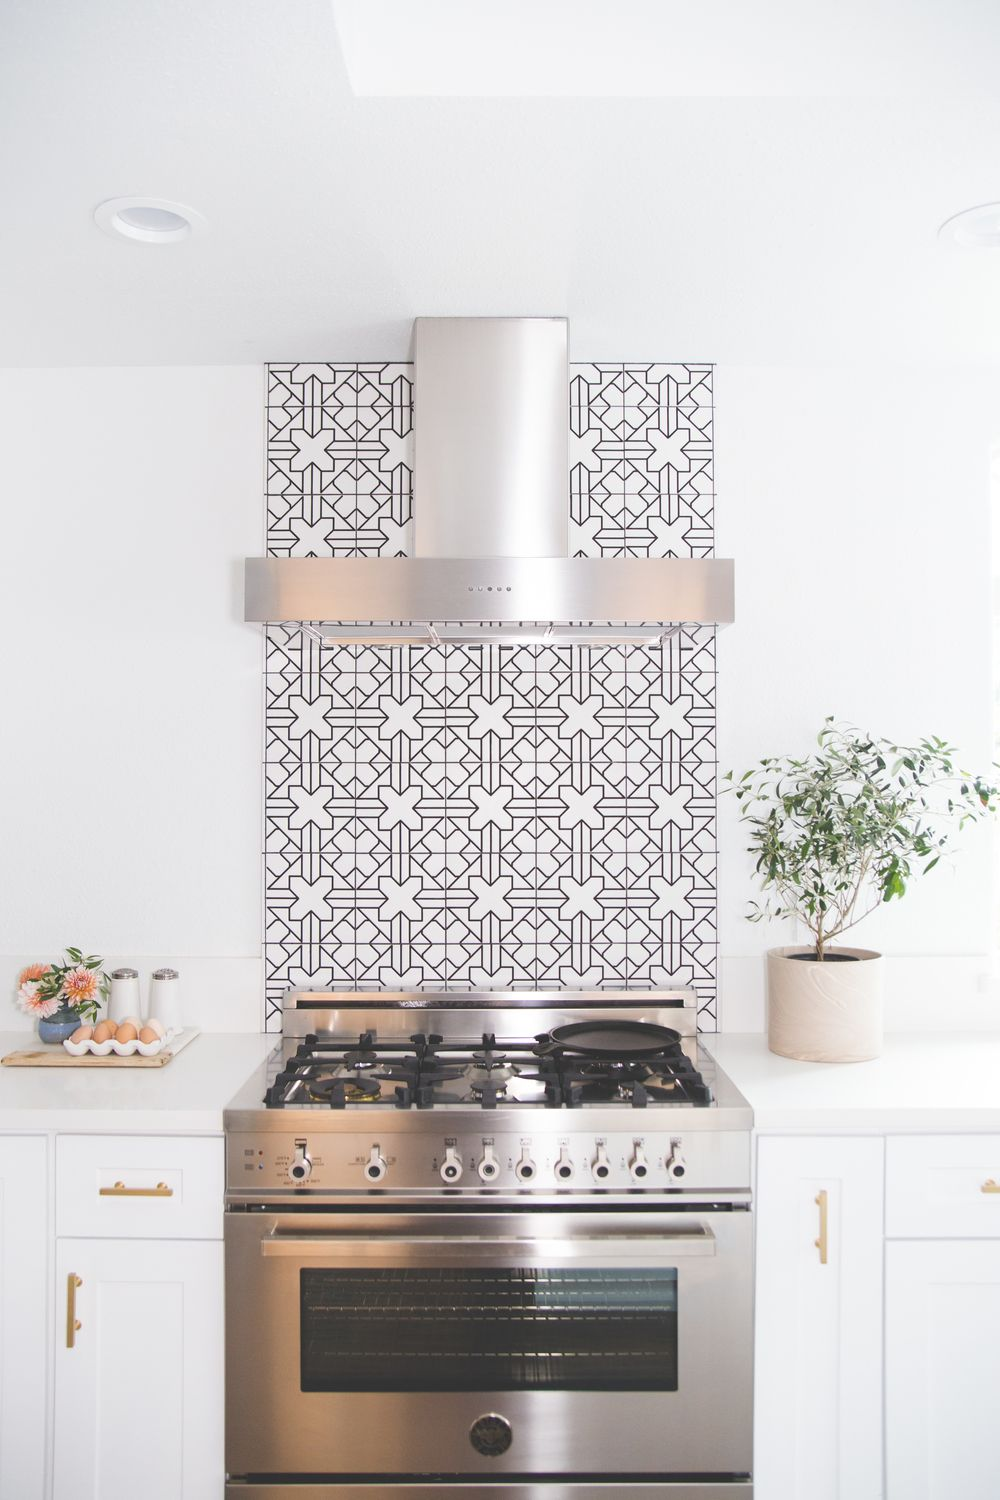 Not Your Grandmas Kitchen... | Pinterest | Moroccan, Kitchens and House